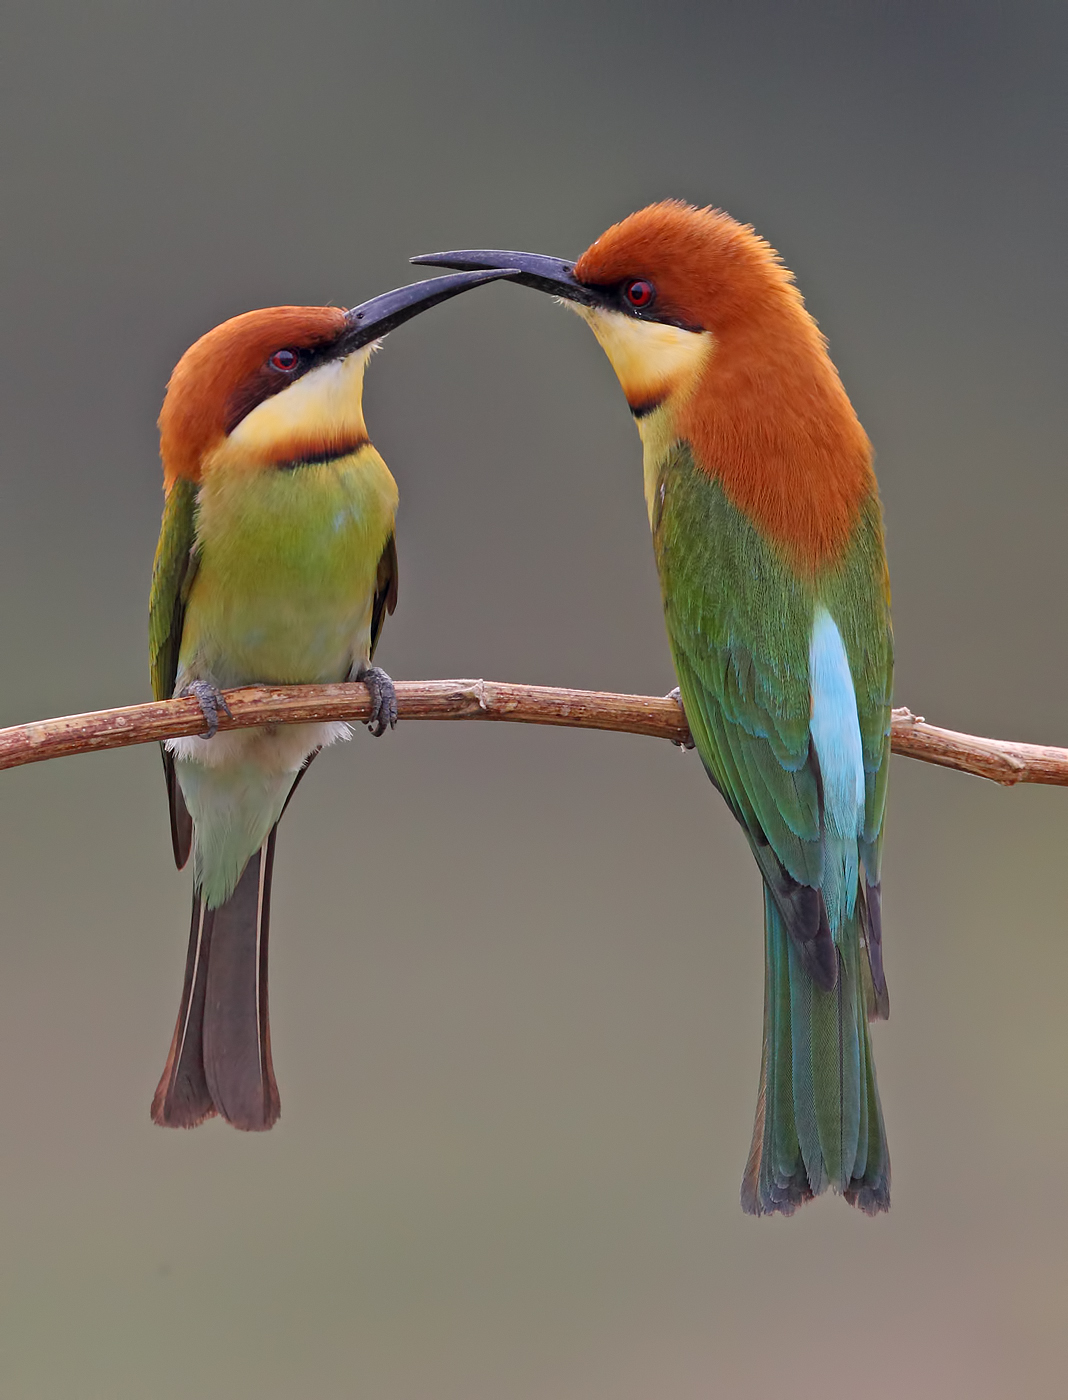 Chestnut-headed Bee-eaters nesting in Penang - photo#28